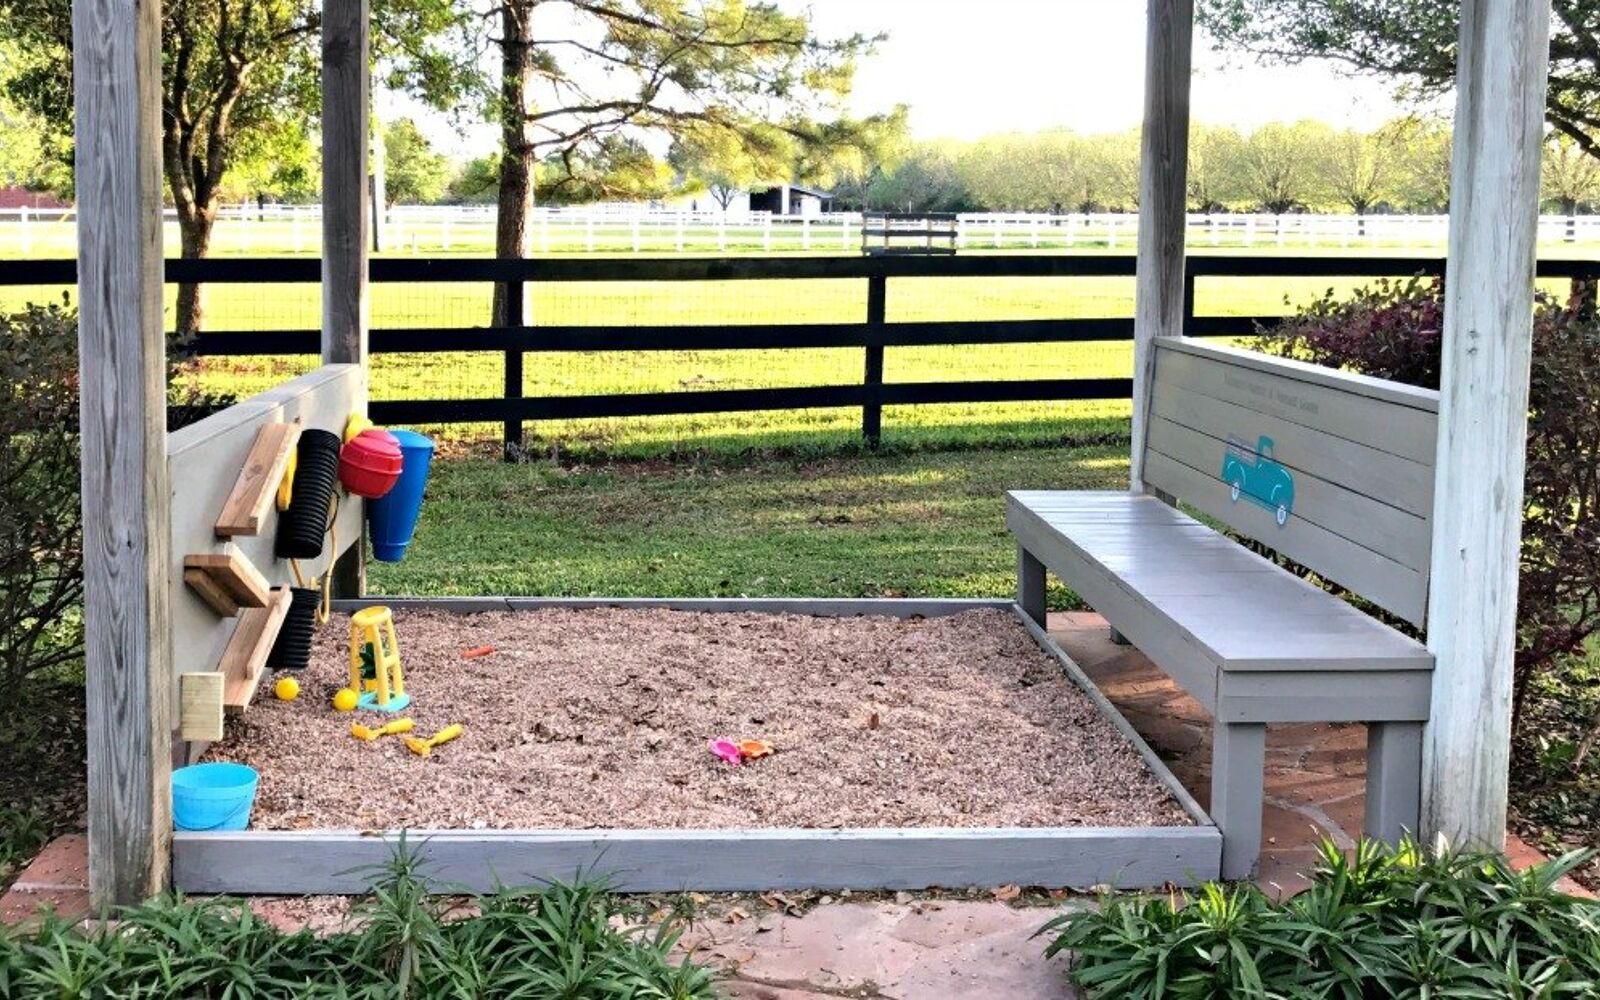 s upgrade your backyard with these 30 clever ideas, Build this joyful playing area for kids